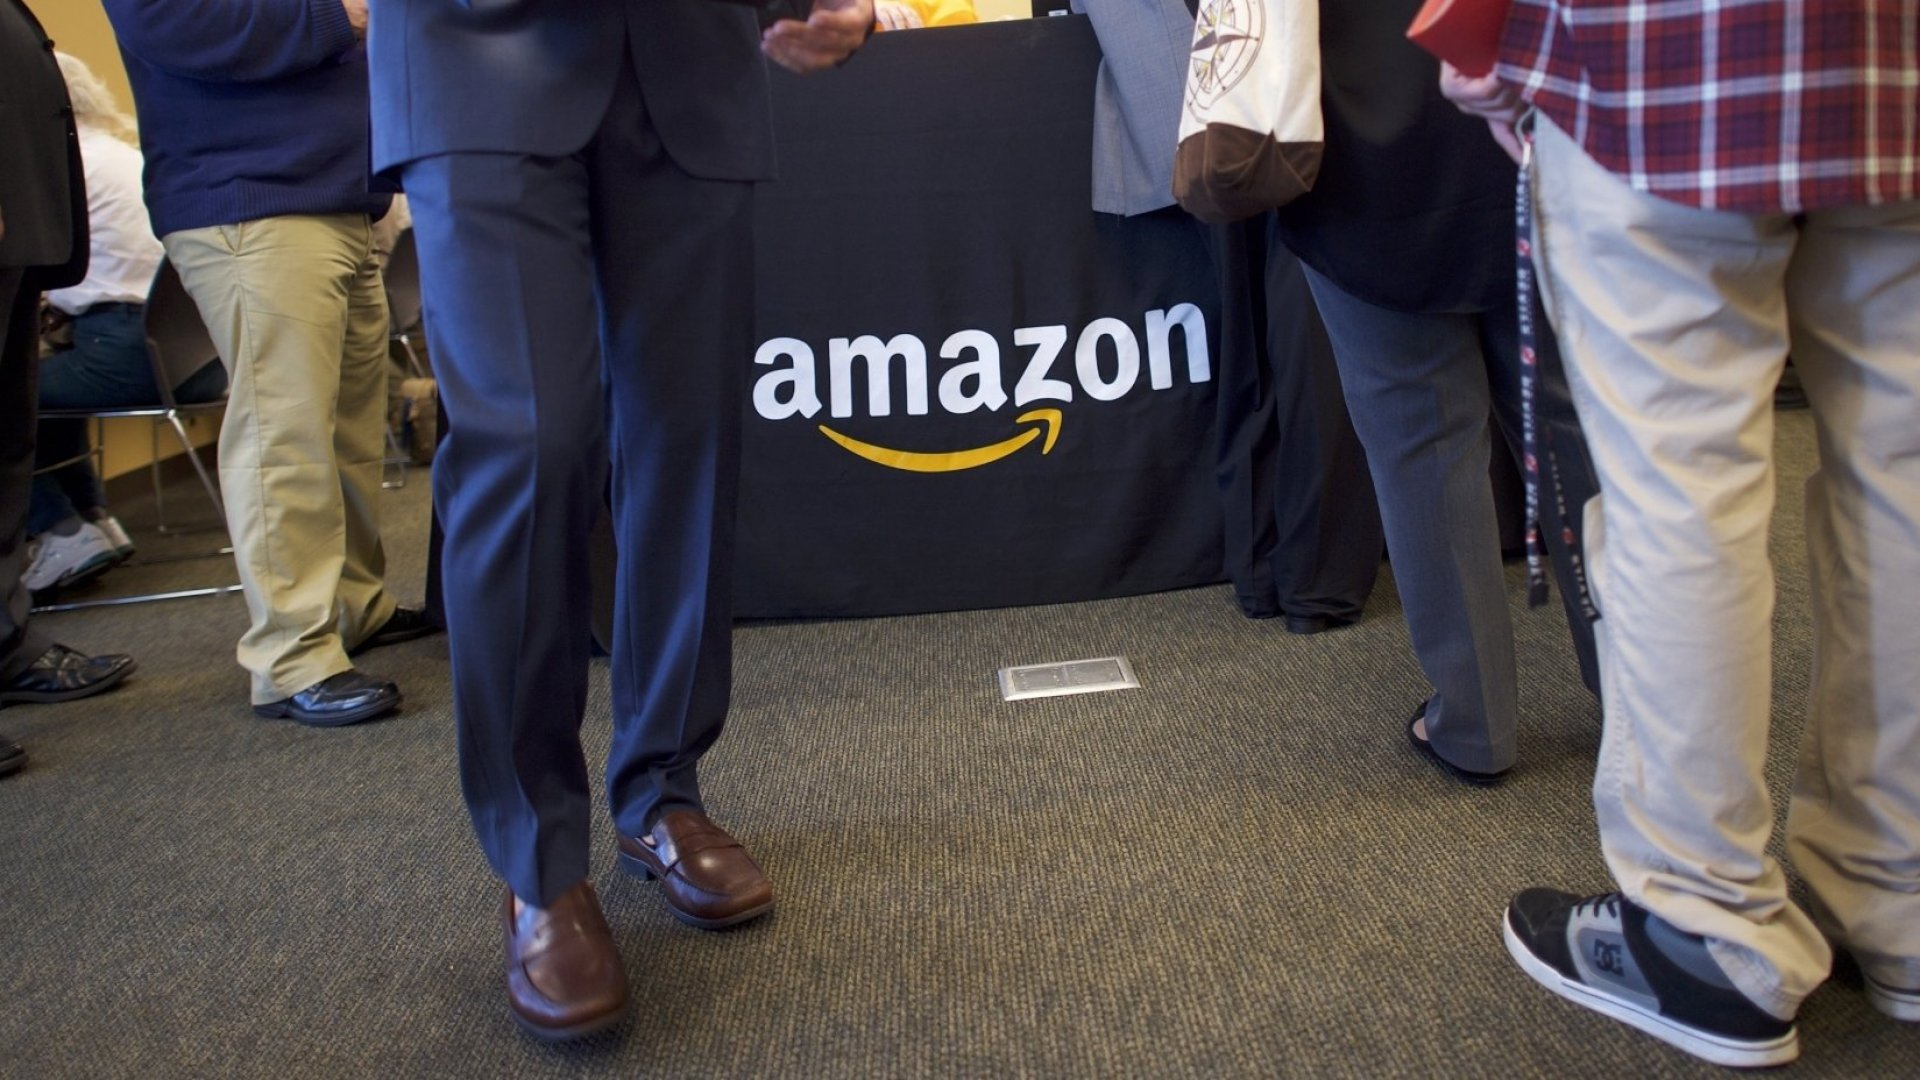 Amazon to Hire 100,000 Without Asking for Salary History. Women Still Hit Hardest.